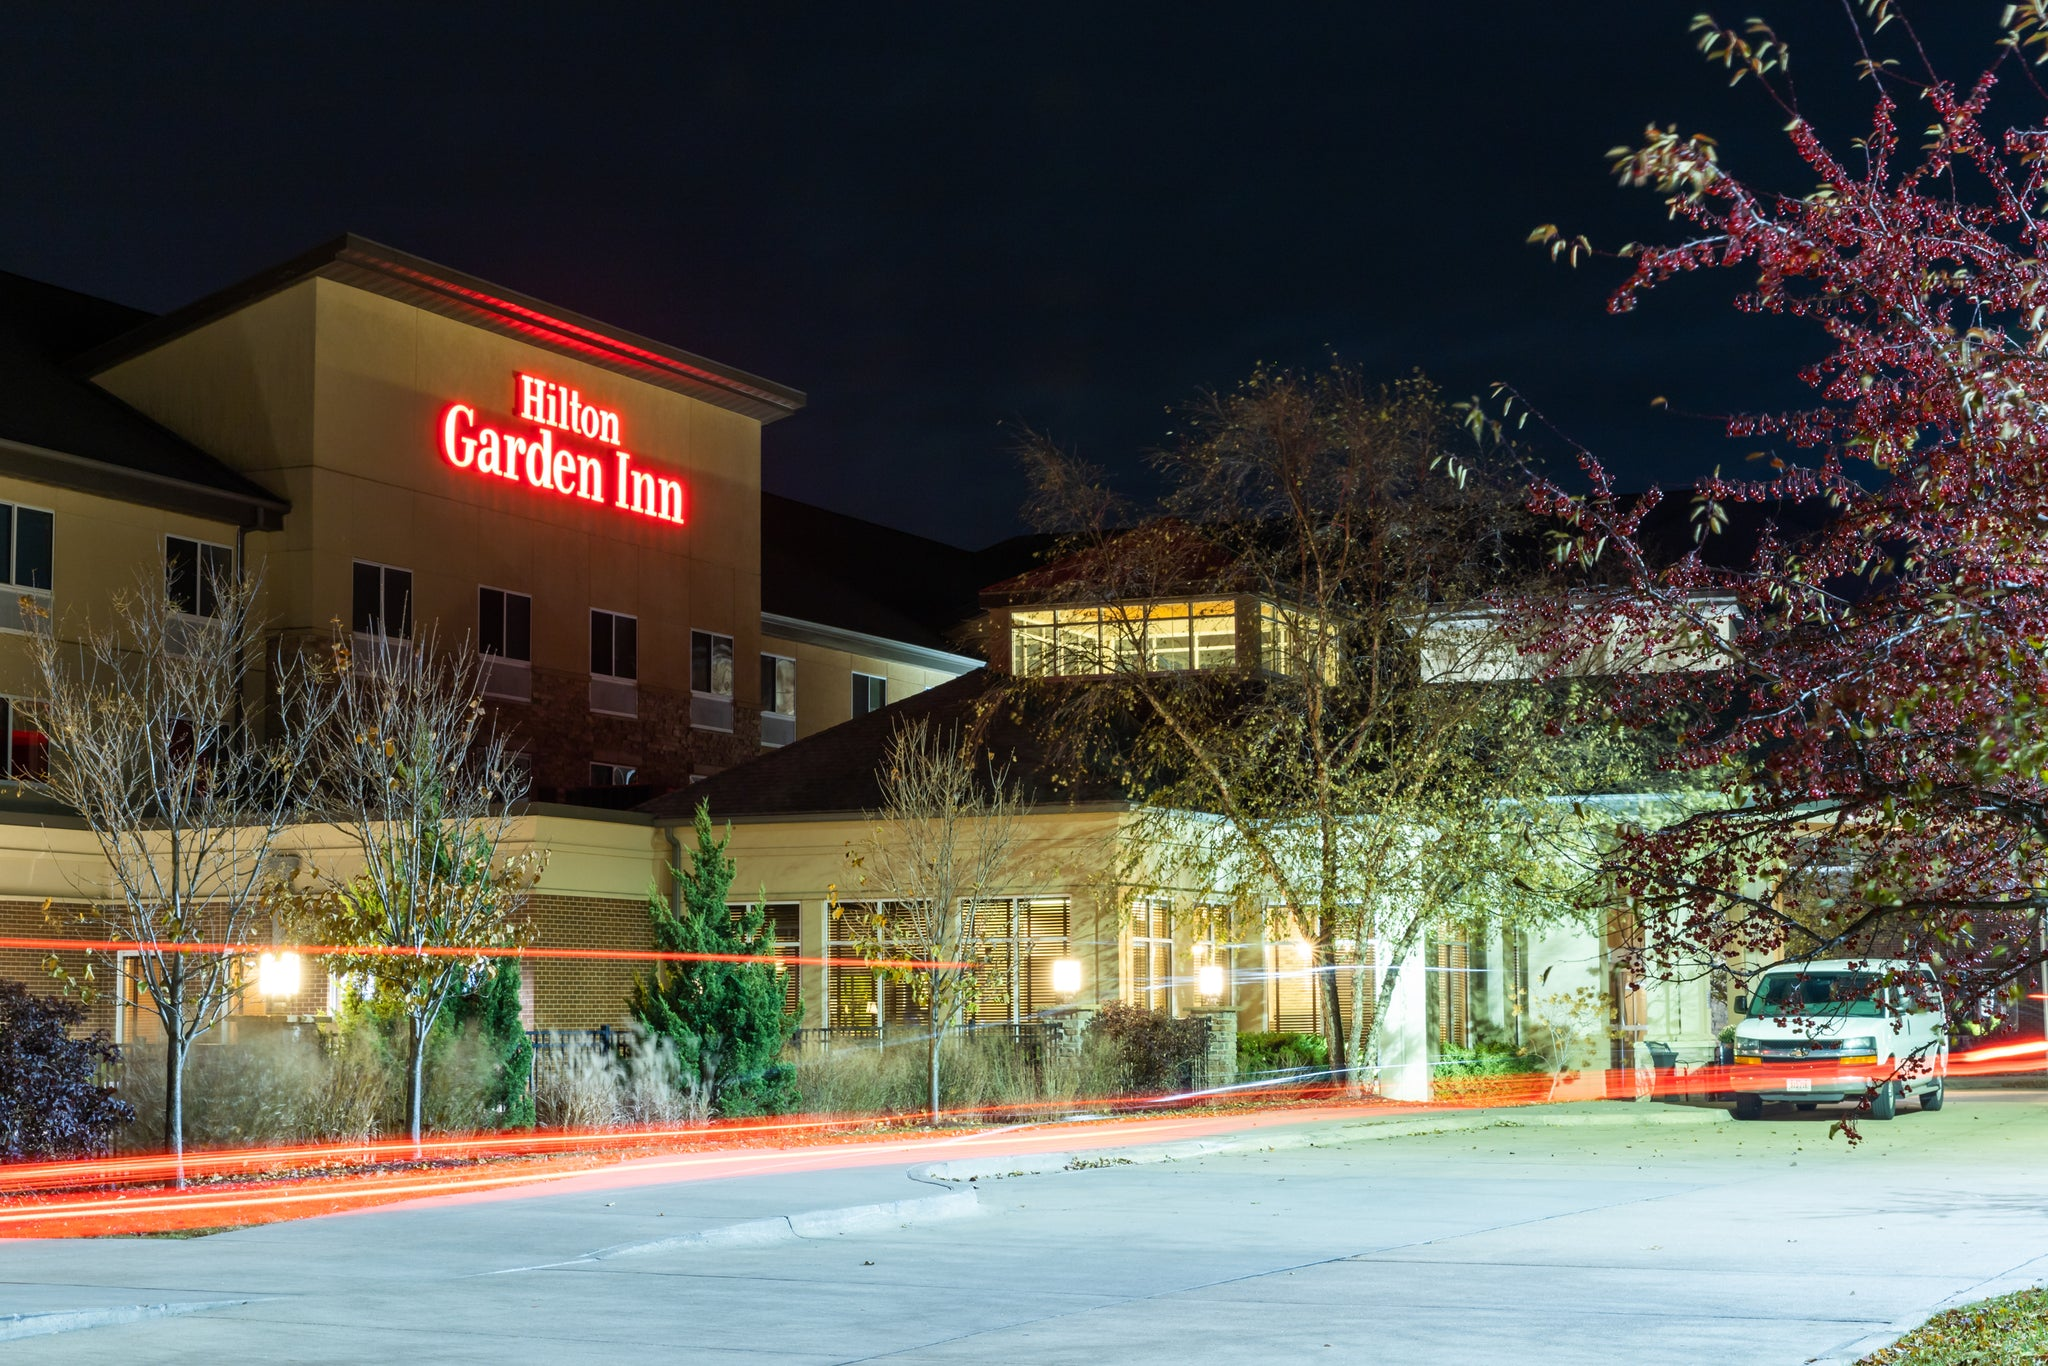 hilton garden inn exterior shot while night out